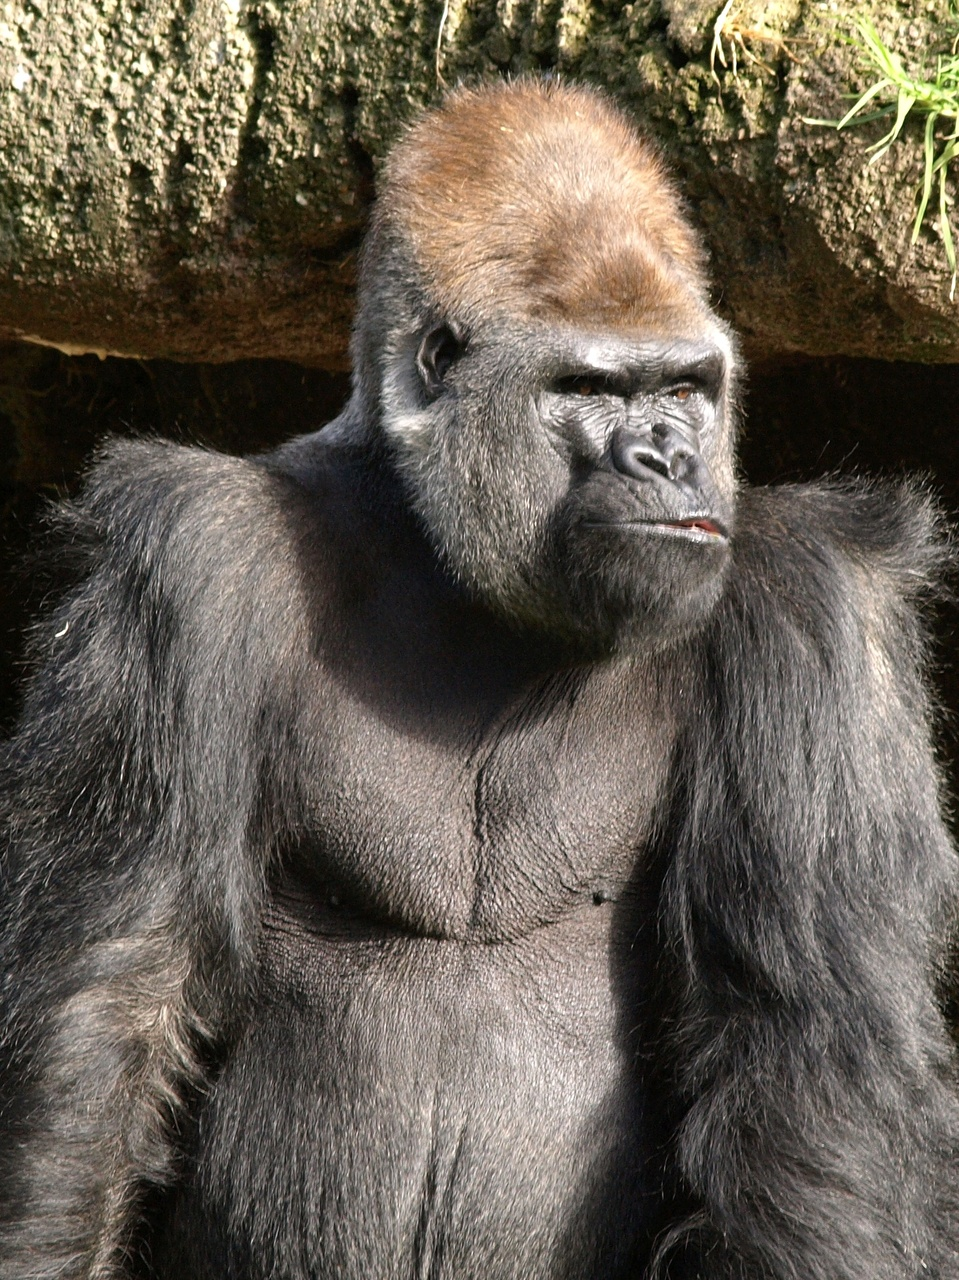 Gorilla watches you